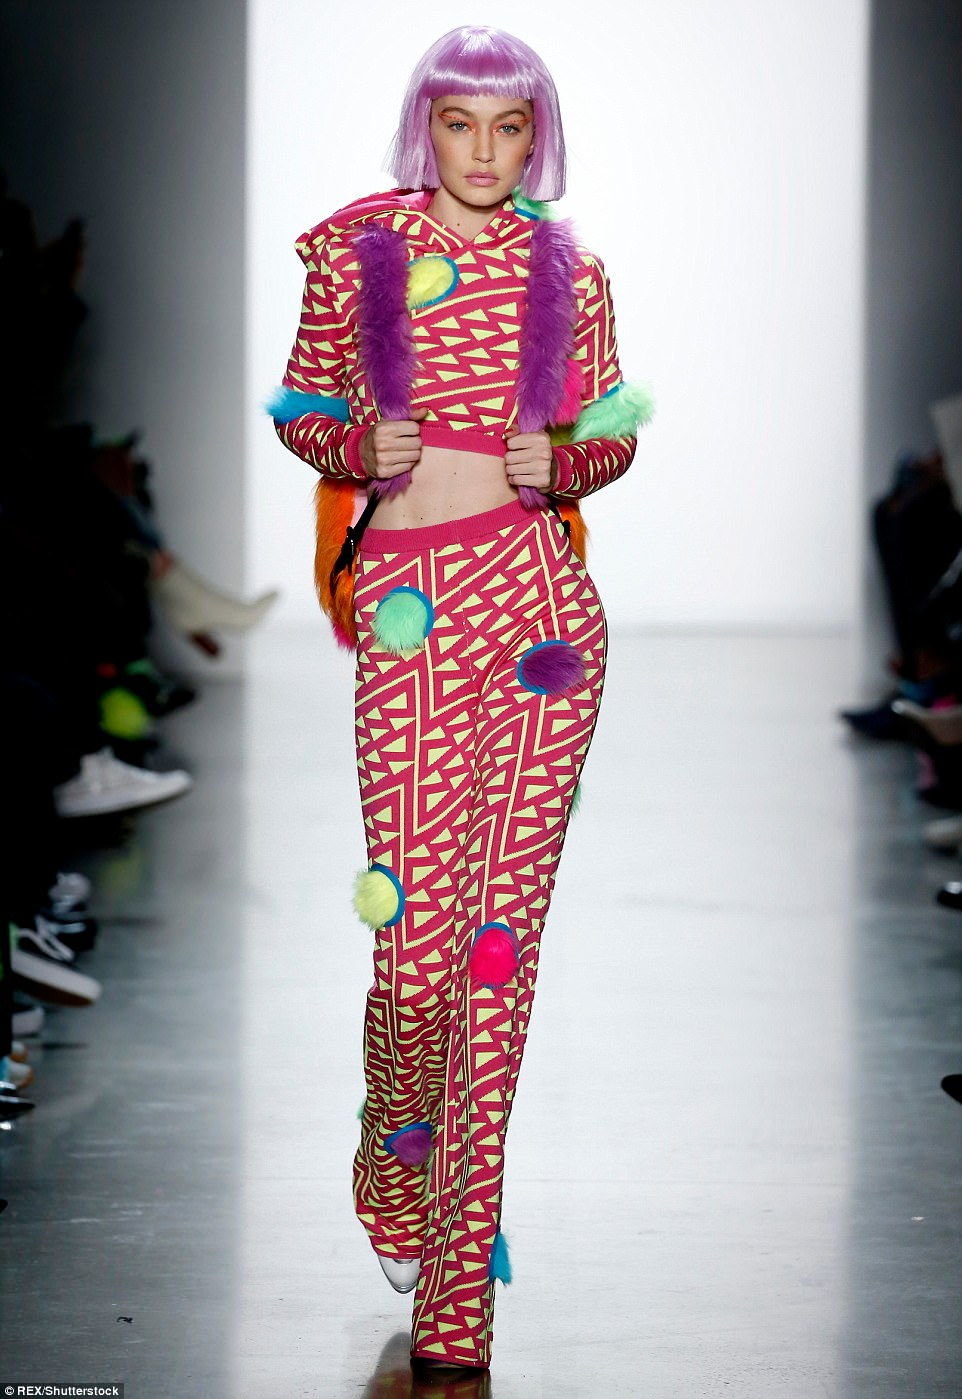 JEREMY-SCOTT-NEW-YORK-FASHION-WEEK